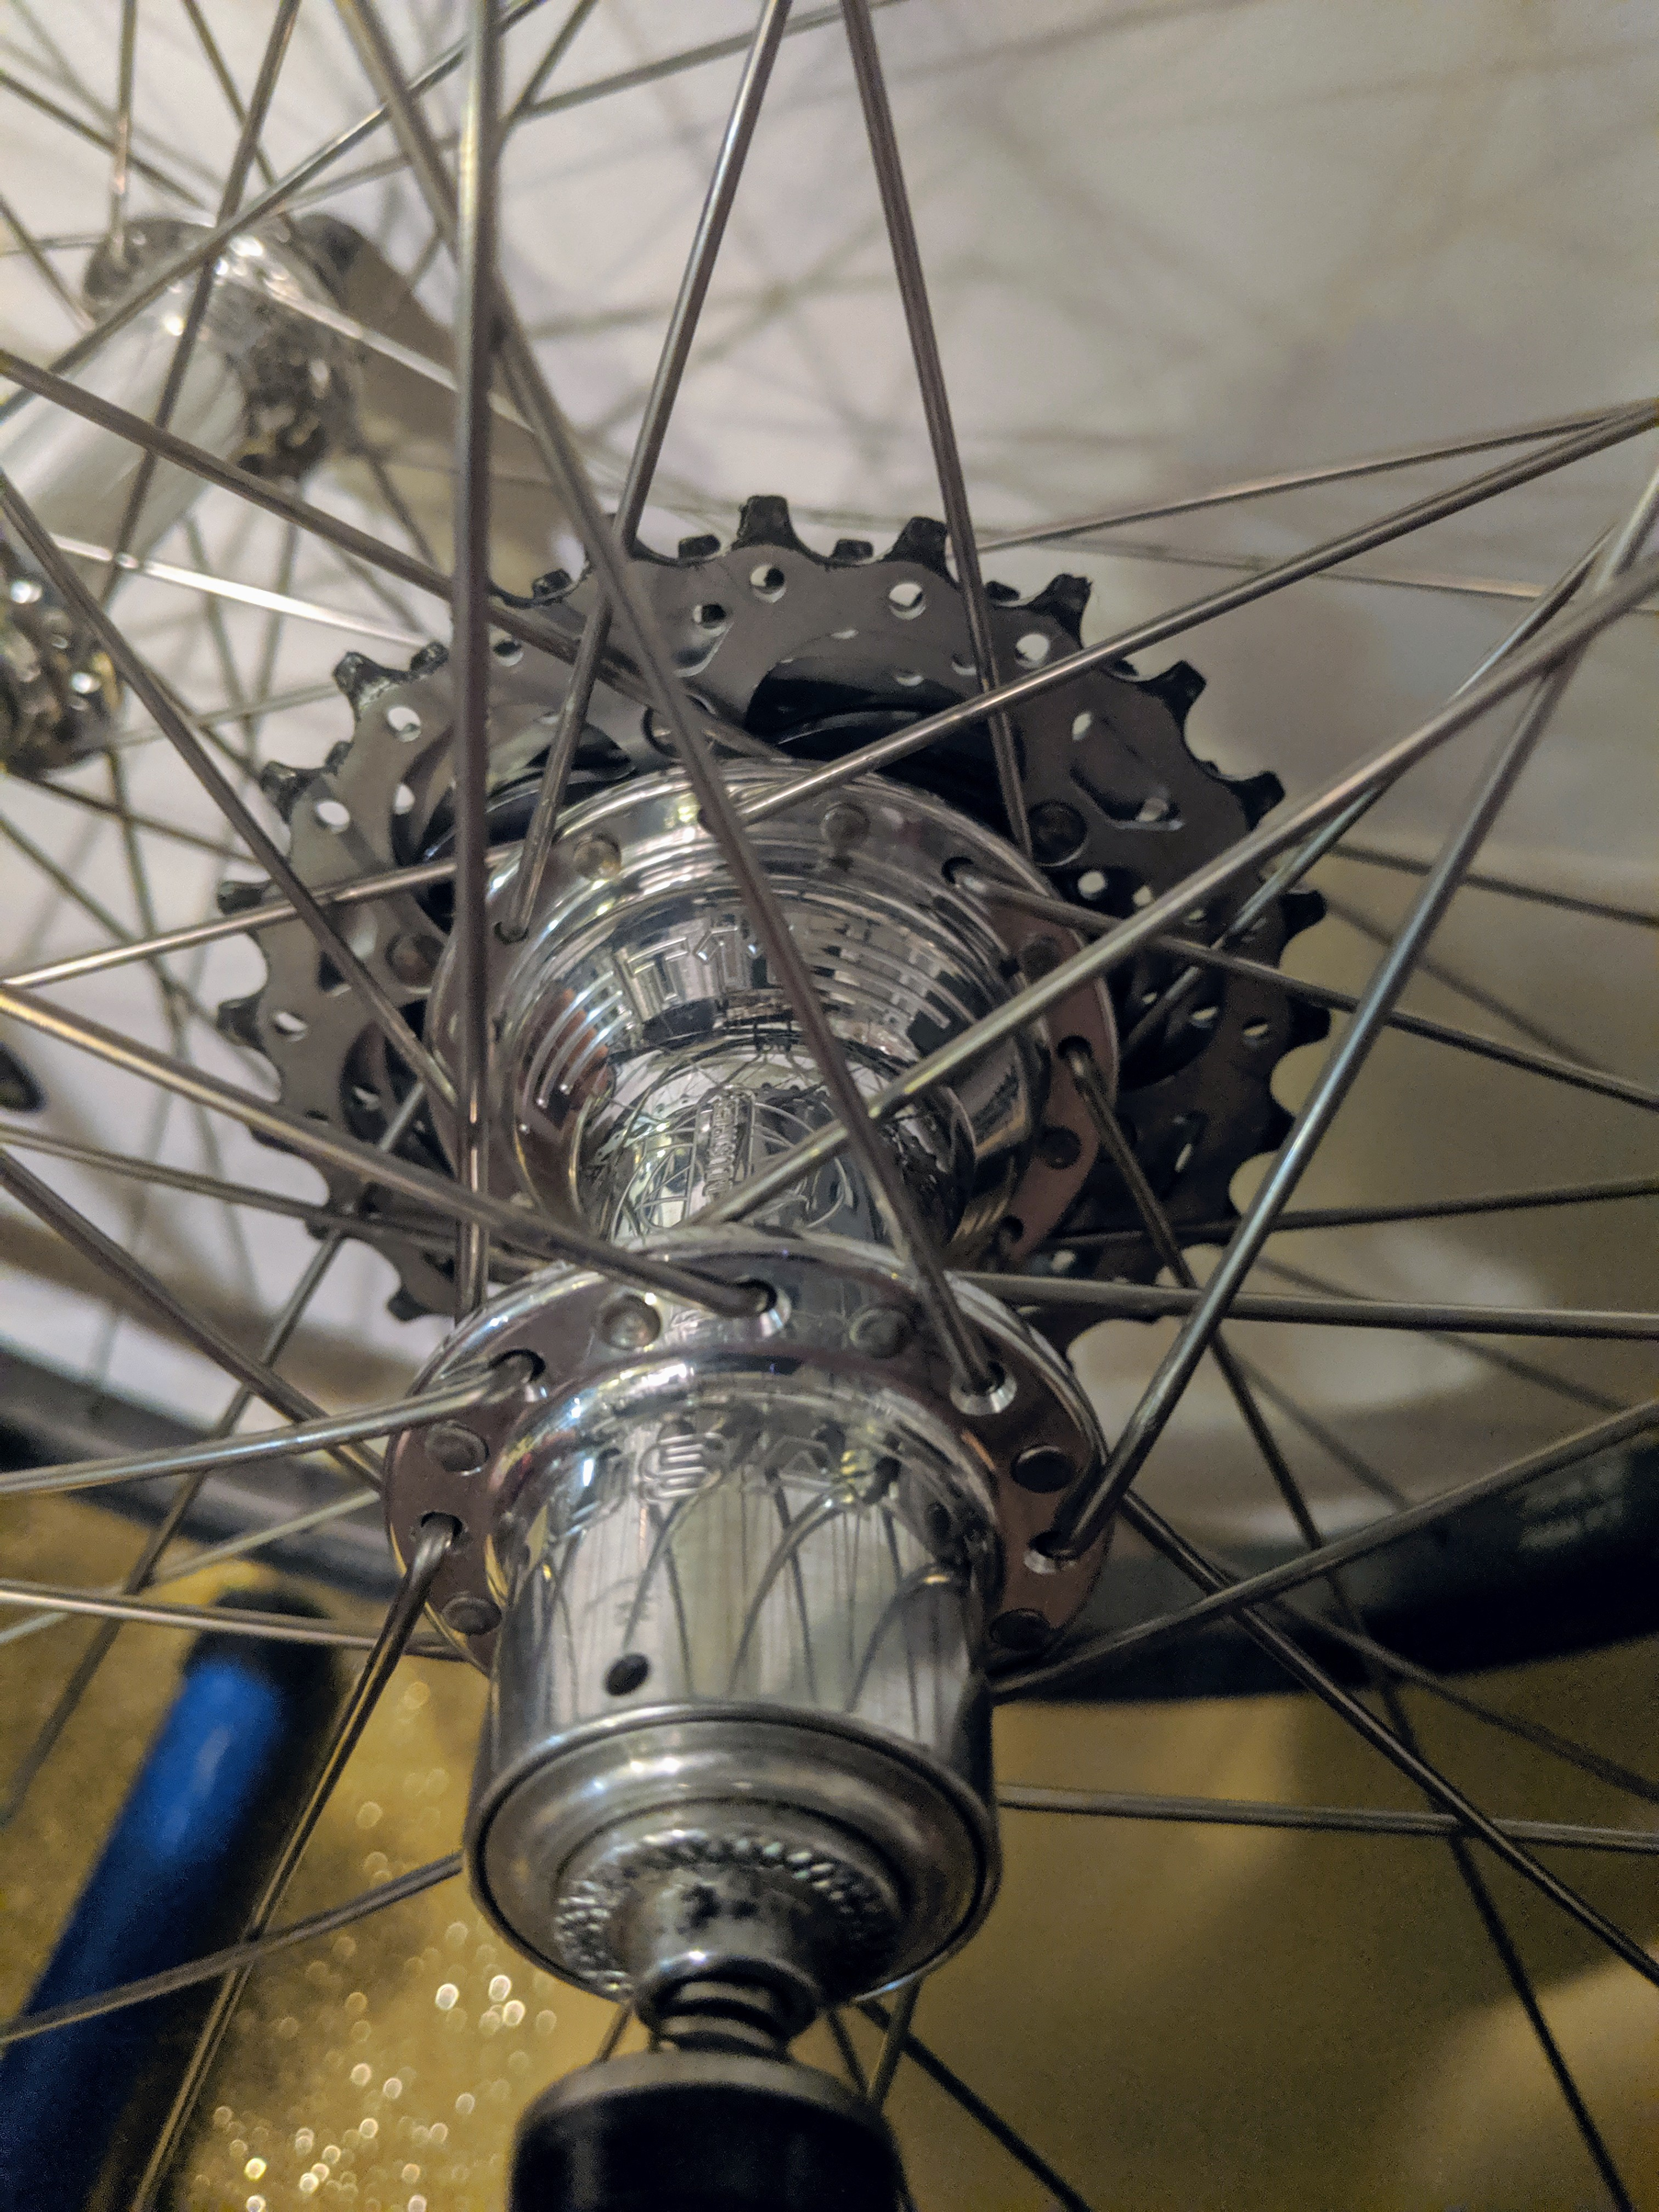 Ambrosio-Nemesis-to-White-Industry-Hubs-Campy-body-and-cassette-tubular-wheelset-2